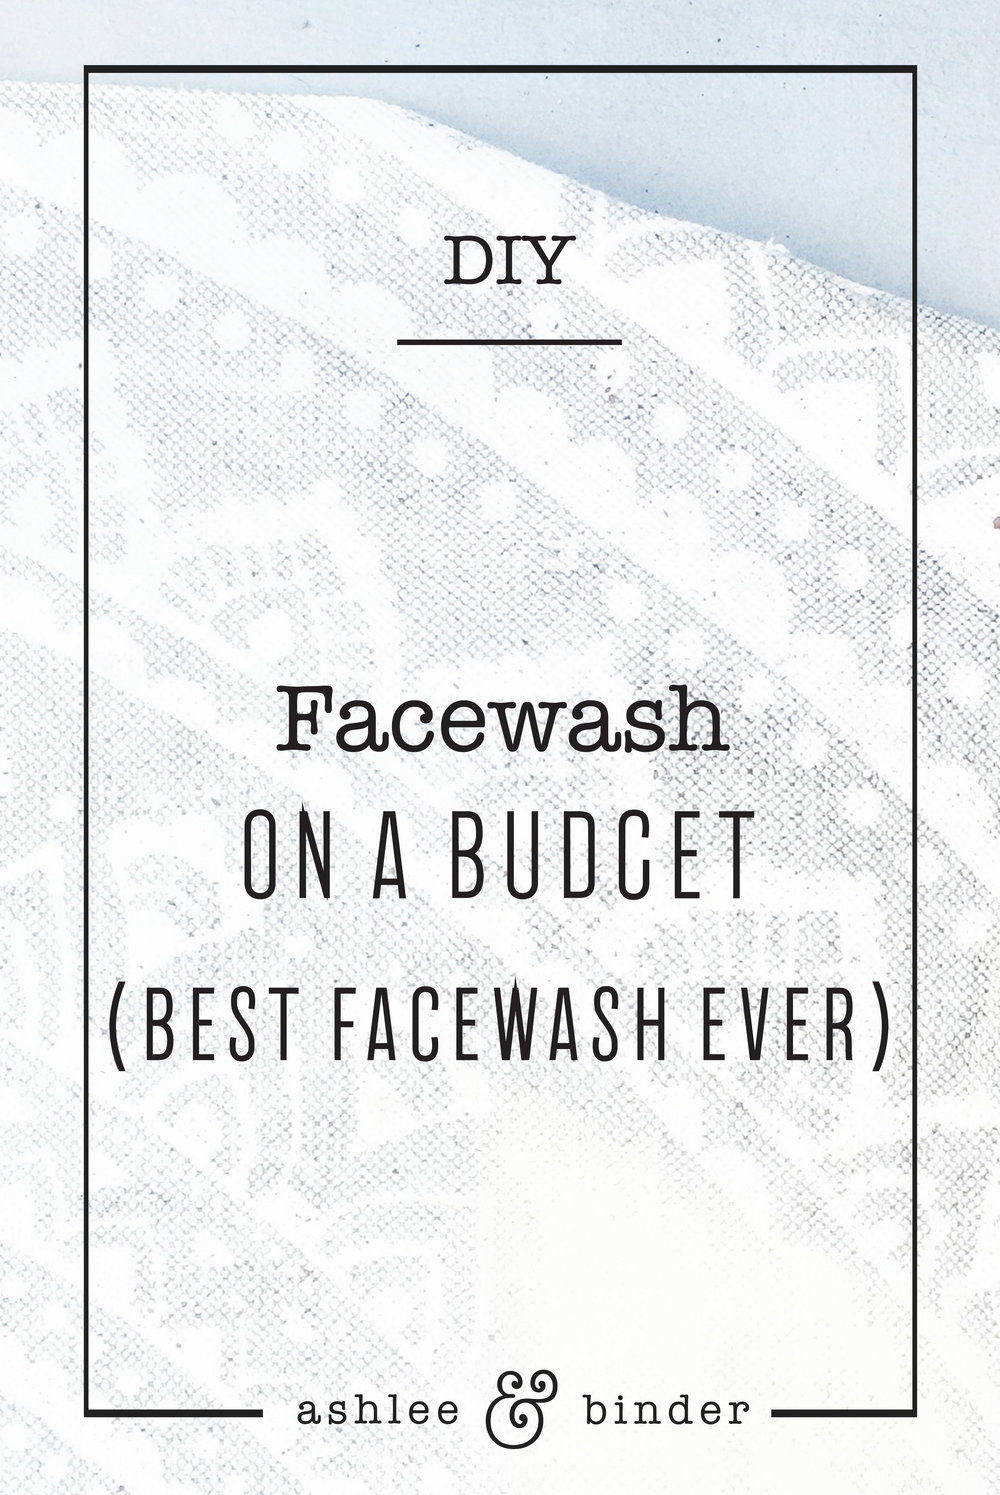 DIY Facewash